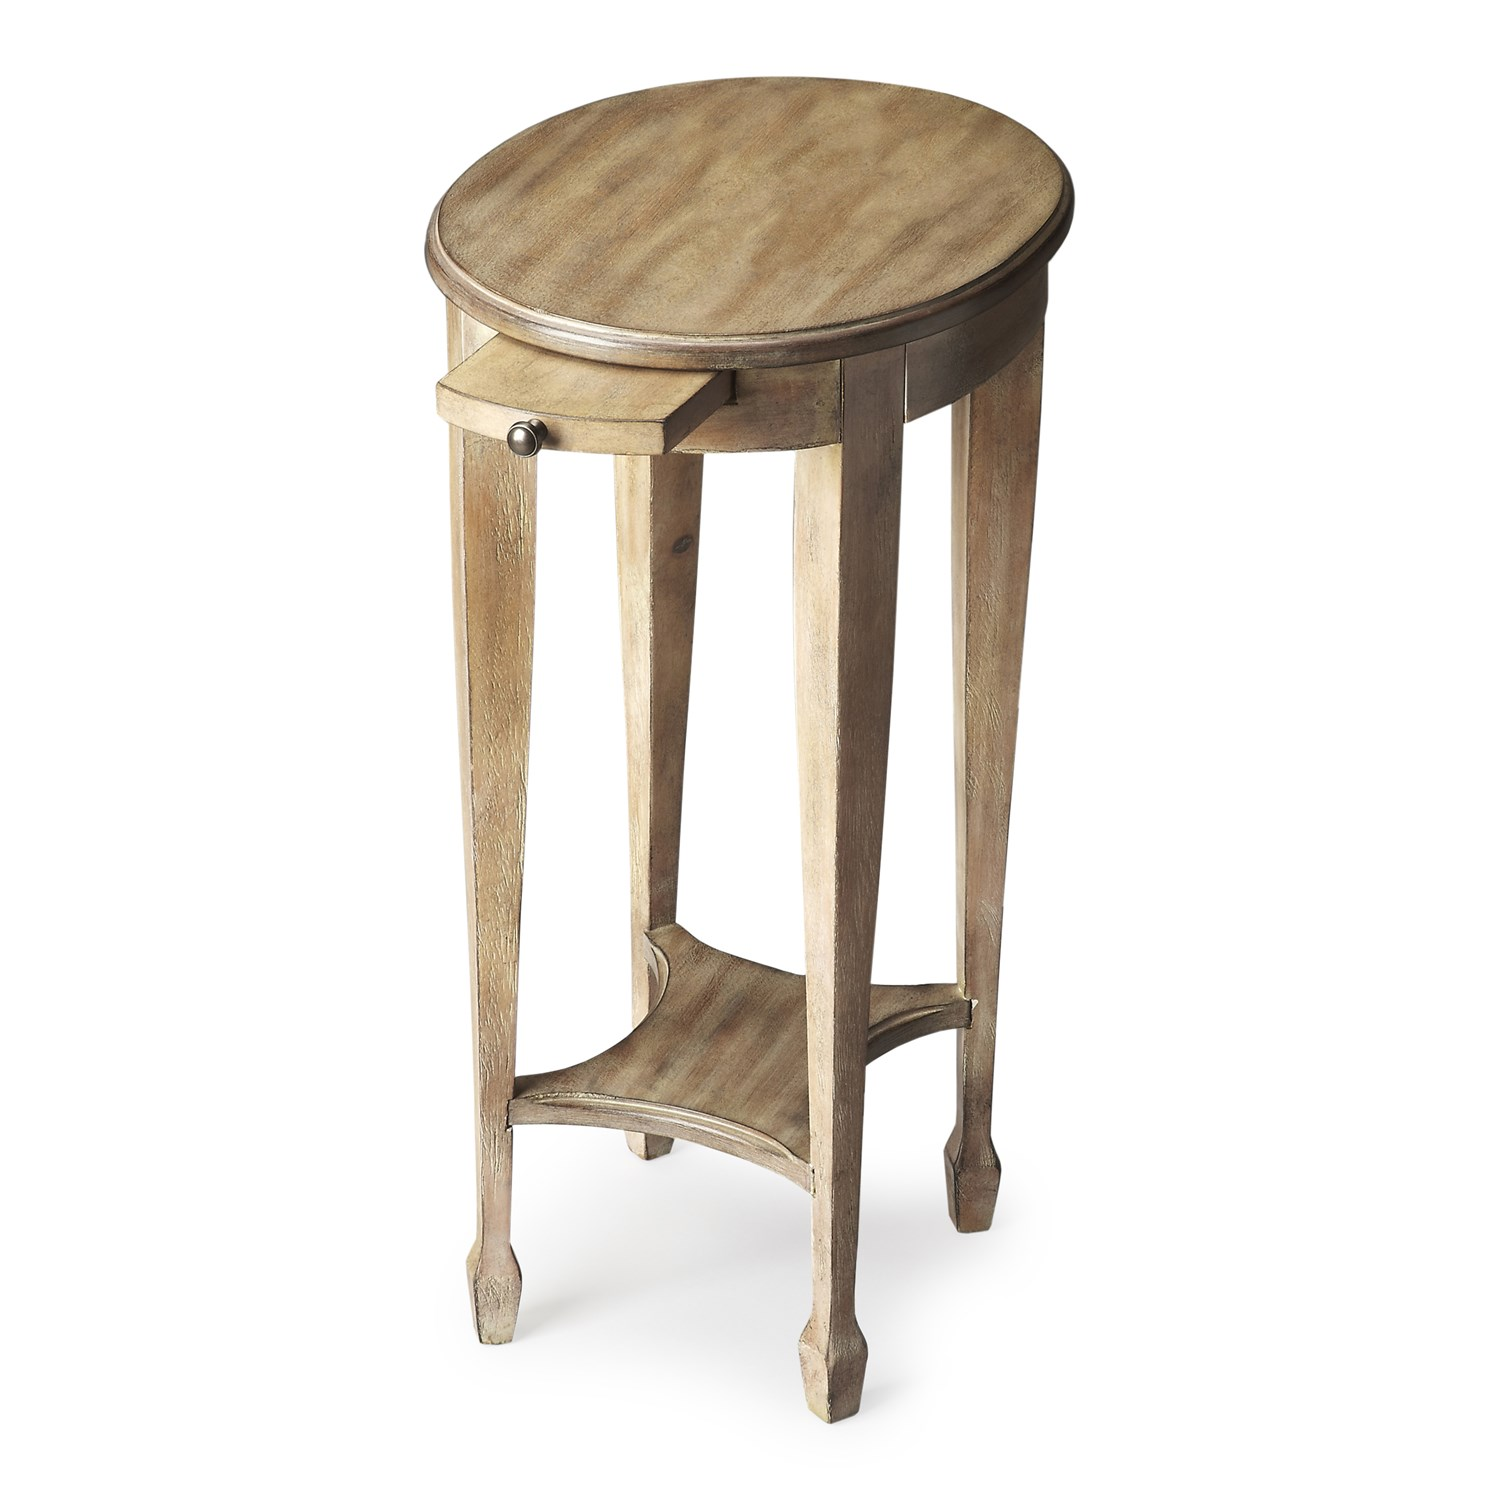 butler specialty arielle driftwood accent table the simple white tap expand nate berkus gold target kids chairs tiffany floor lamp shade coastal console mosaic furniture outdoor